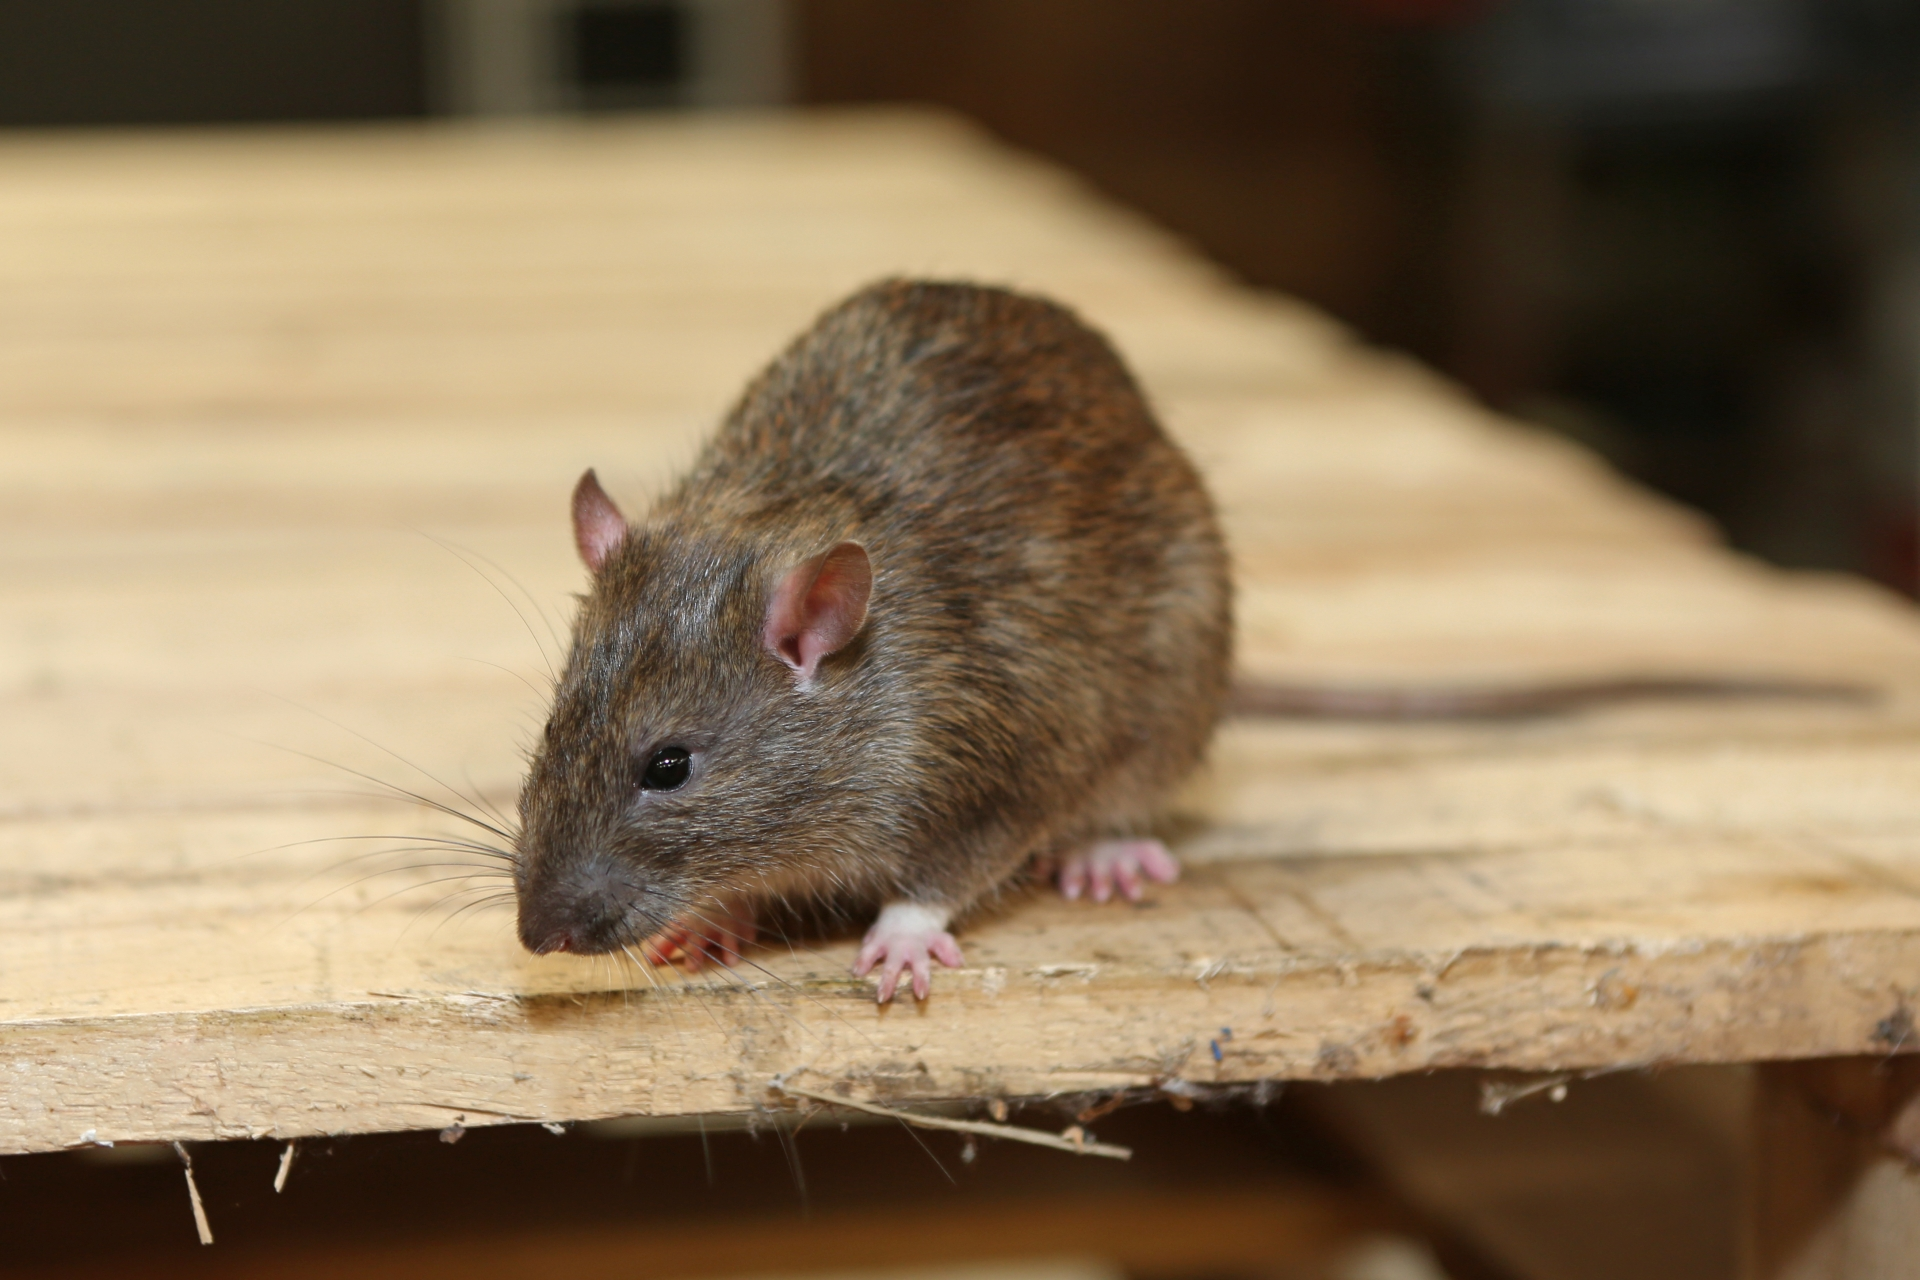 Rat Infestation, Pest Control in Thamesmead, SE28. Call Now 020 8166 9746